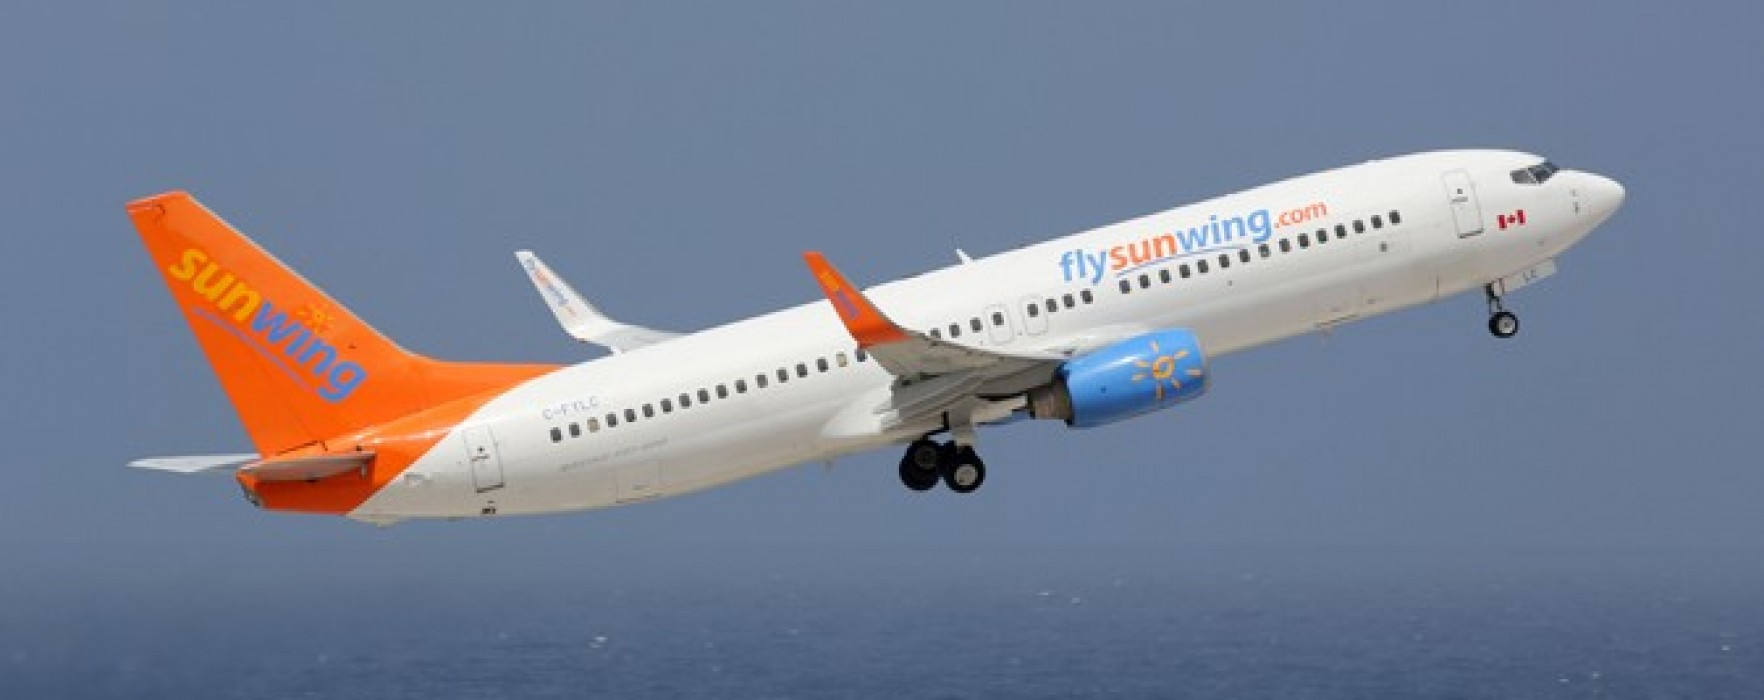 Sunwing returns to the island of Tobago this winter